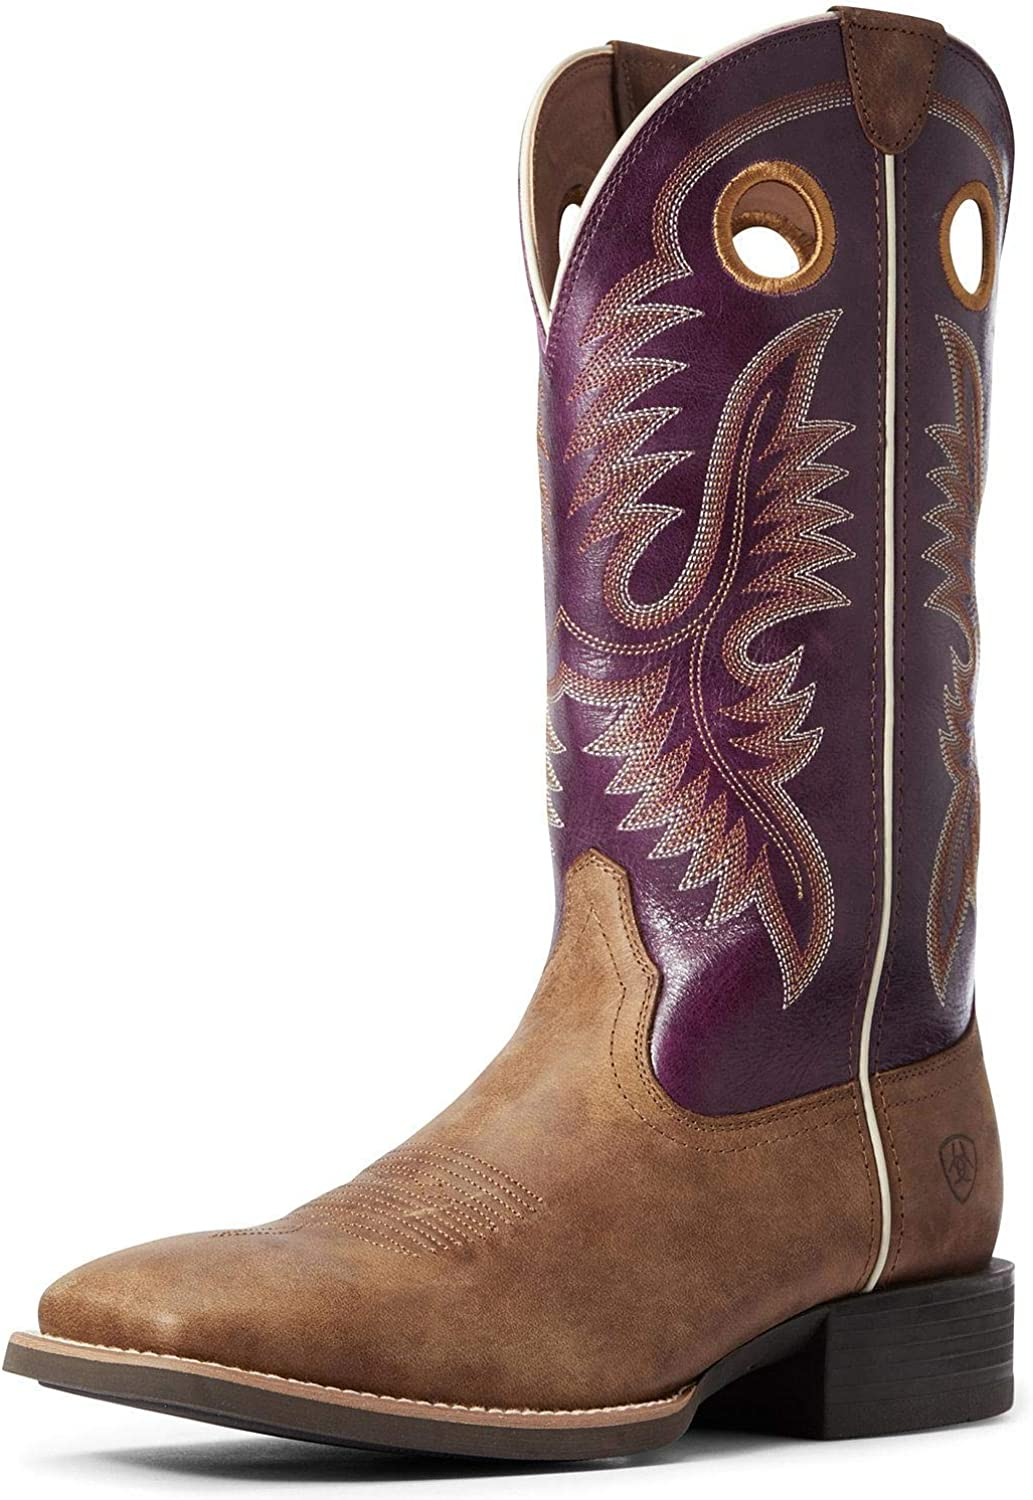 ARIAT Men's Sport Limited time cheap sale Teamster Western Boot 100339 lowest price Toe - Wide Square